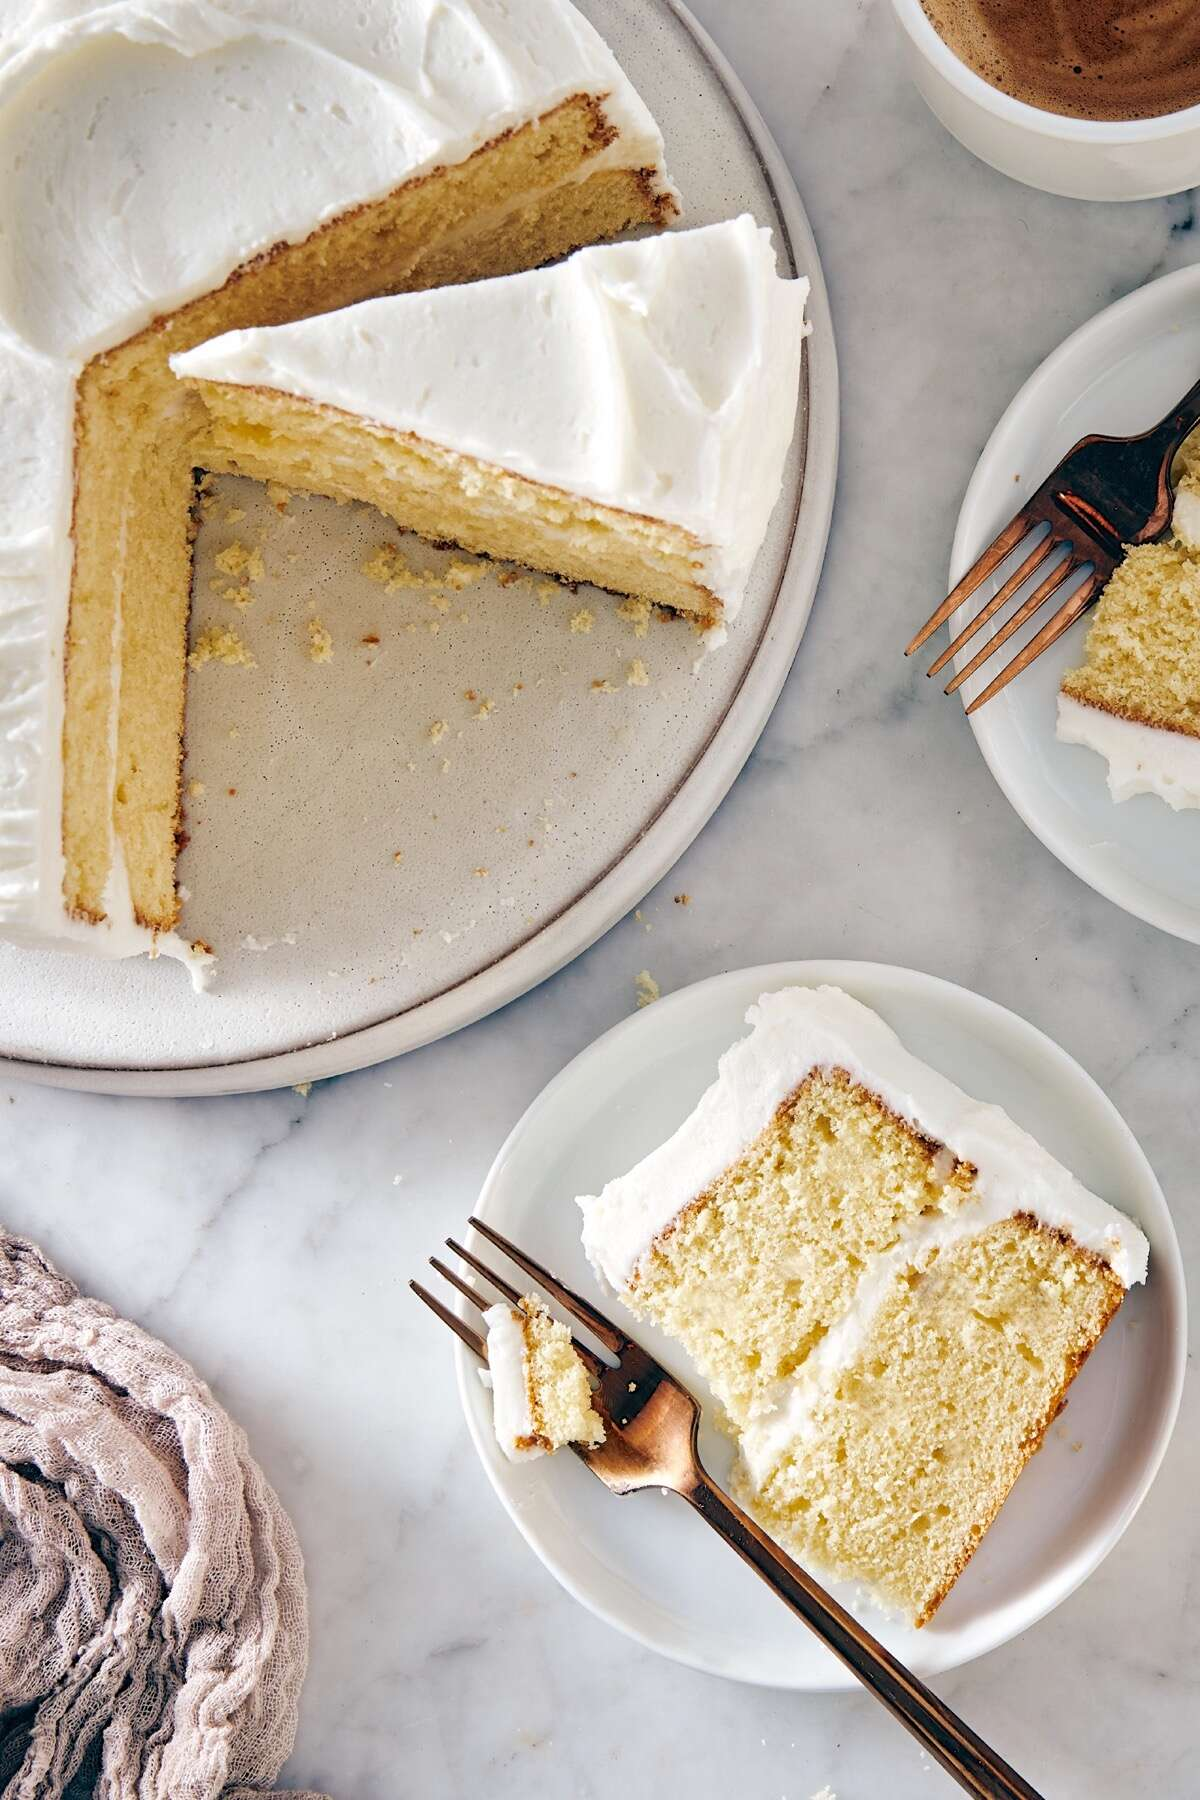 Slice of yellow layer cake with white frosting on a plate, remainder of cake on the side.er of